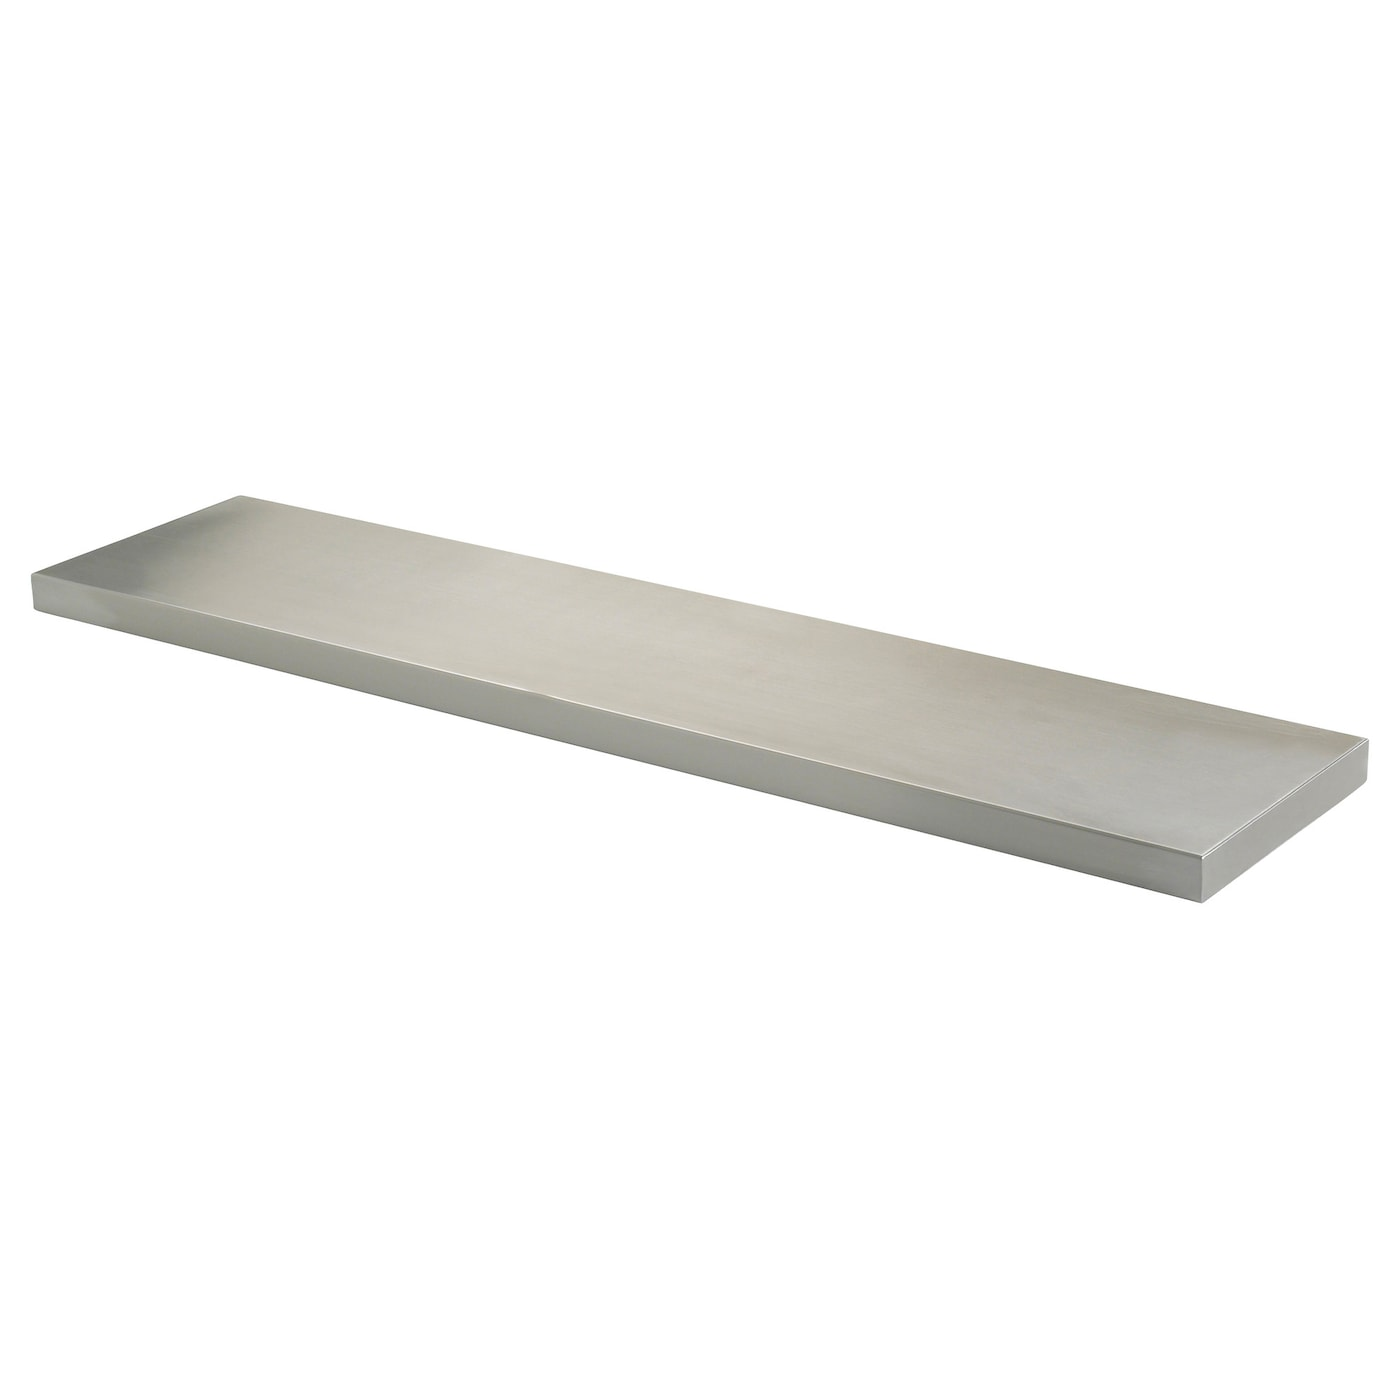 Stainless Steel Wall Shelf Ikea Home Design Ideas